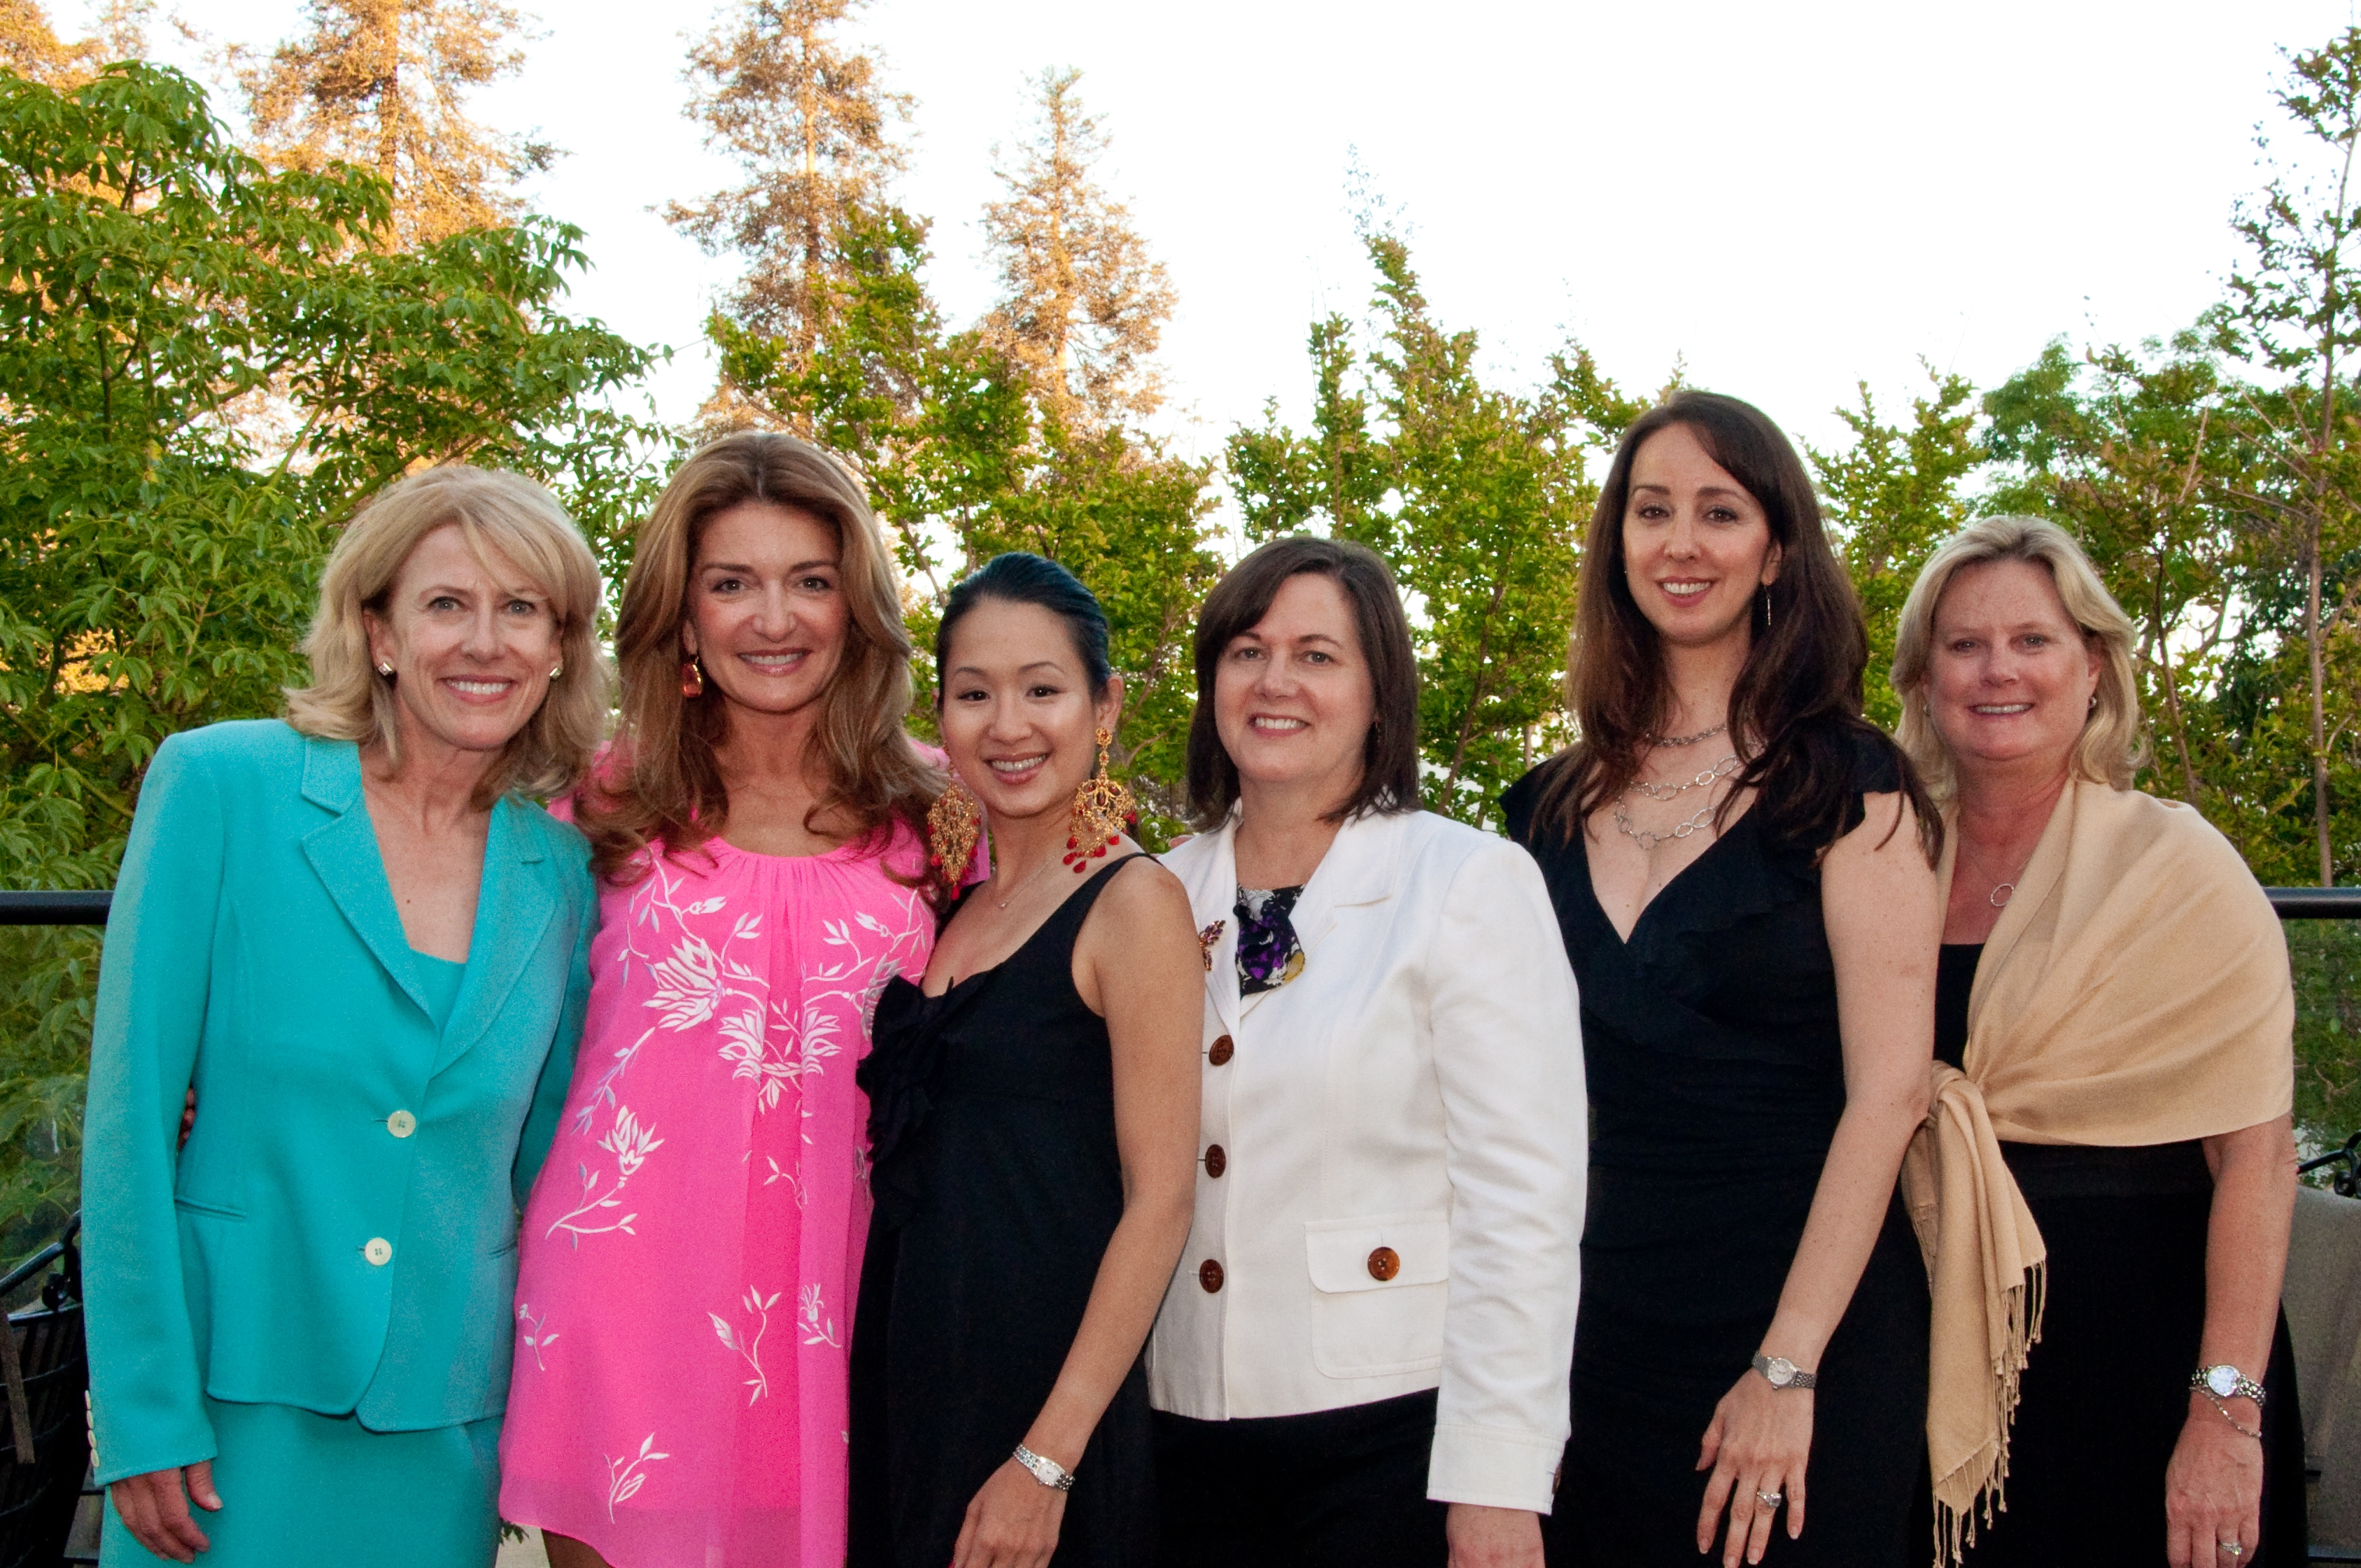 From L to R: Sue Parks, Analisa Ocana-Albert, Sharon Chan, Aletha Anderson, Marica Pendjer and Sally Molnar